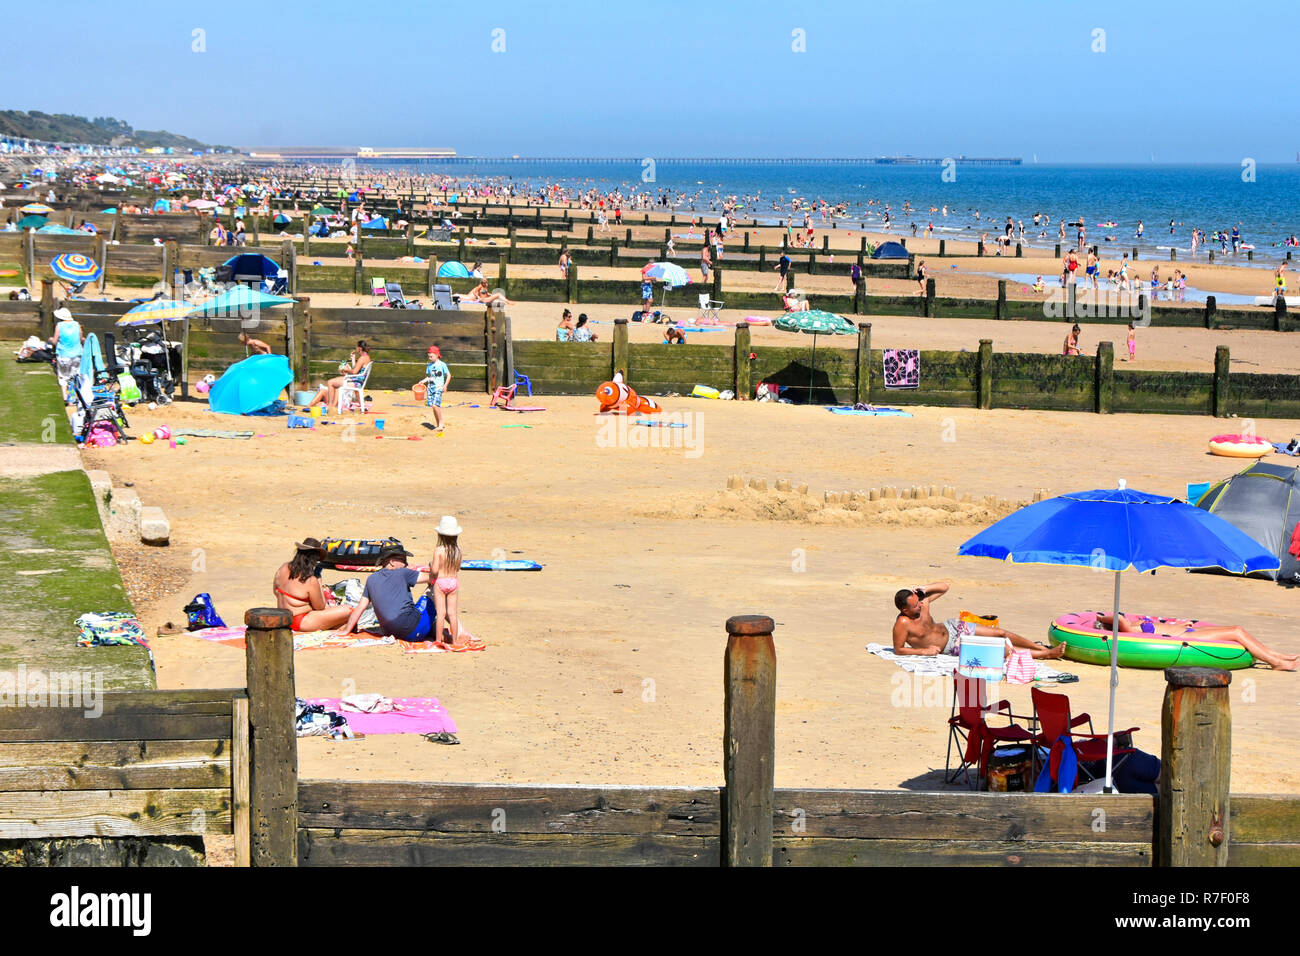 2018 hot weather summer crowds of holiday people on Essex seaside sand coast family beach for safe play & sunbathing Frinton on Sea resort England UK Stock Photo